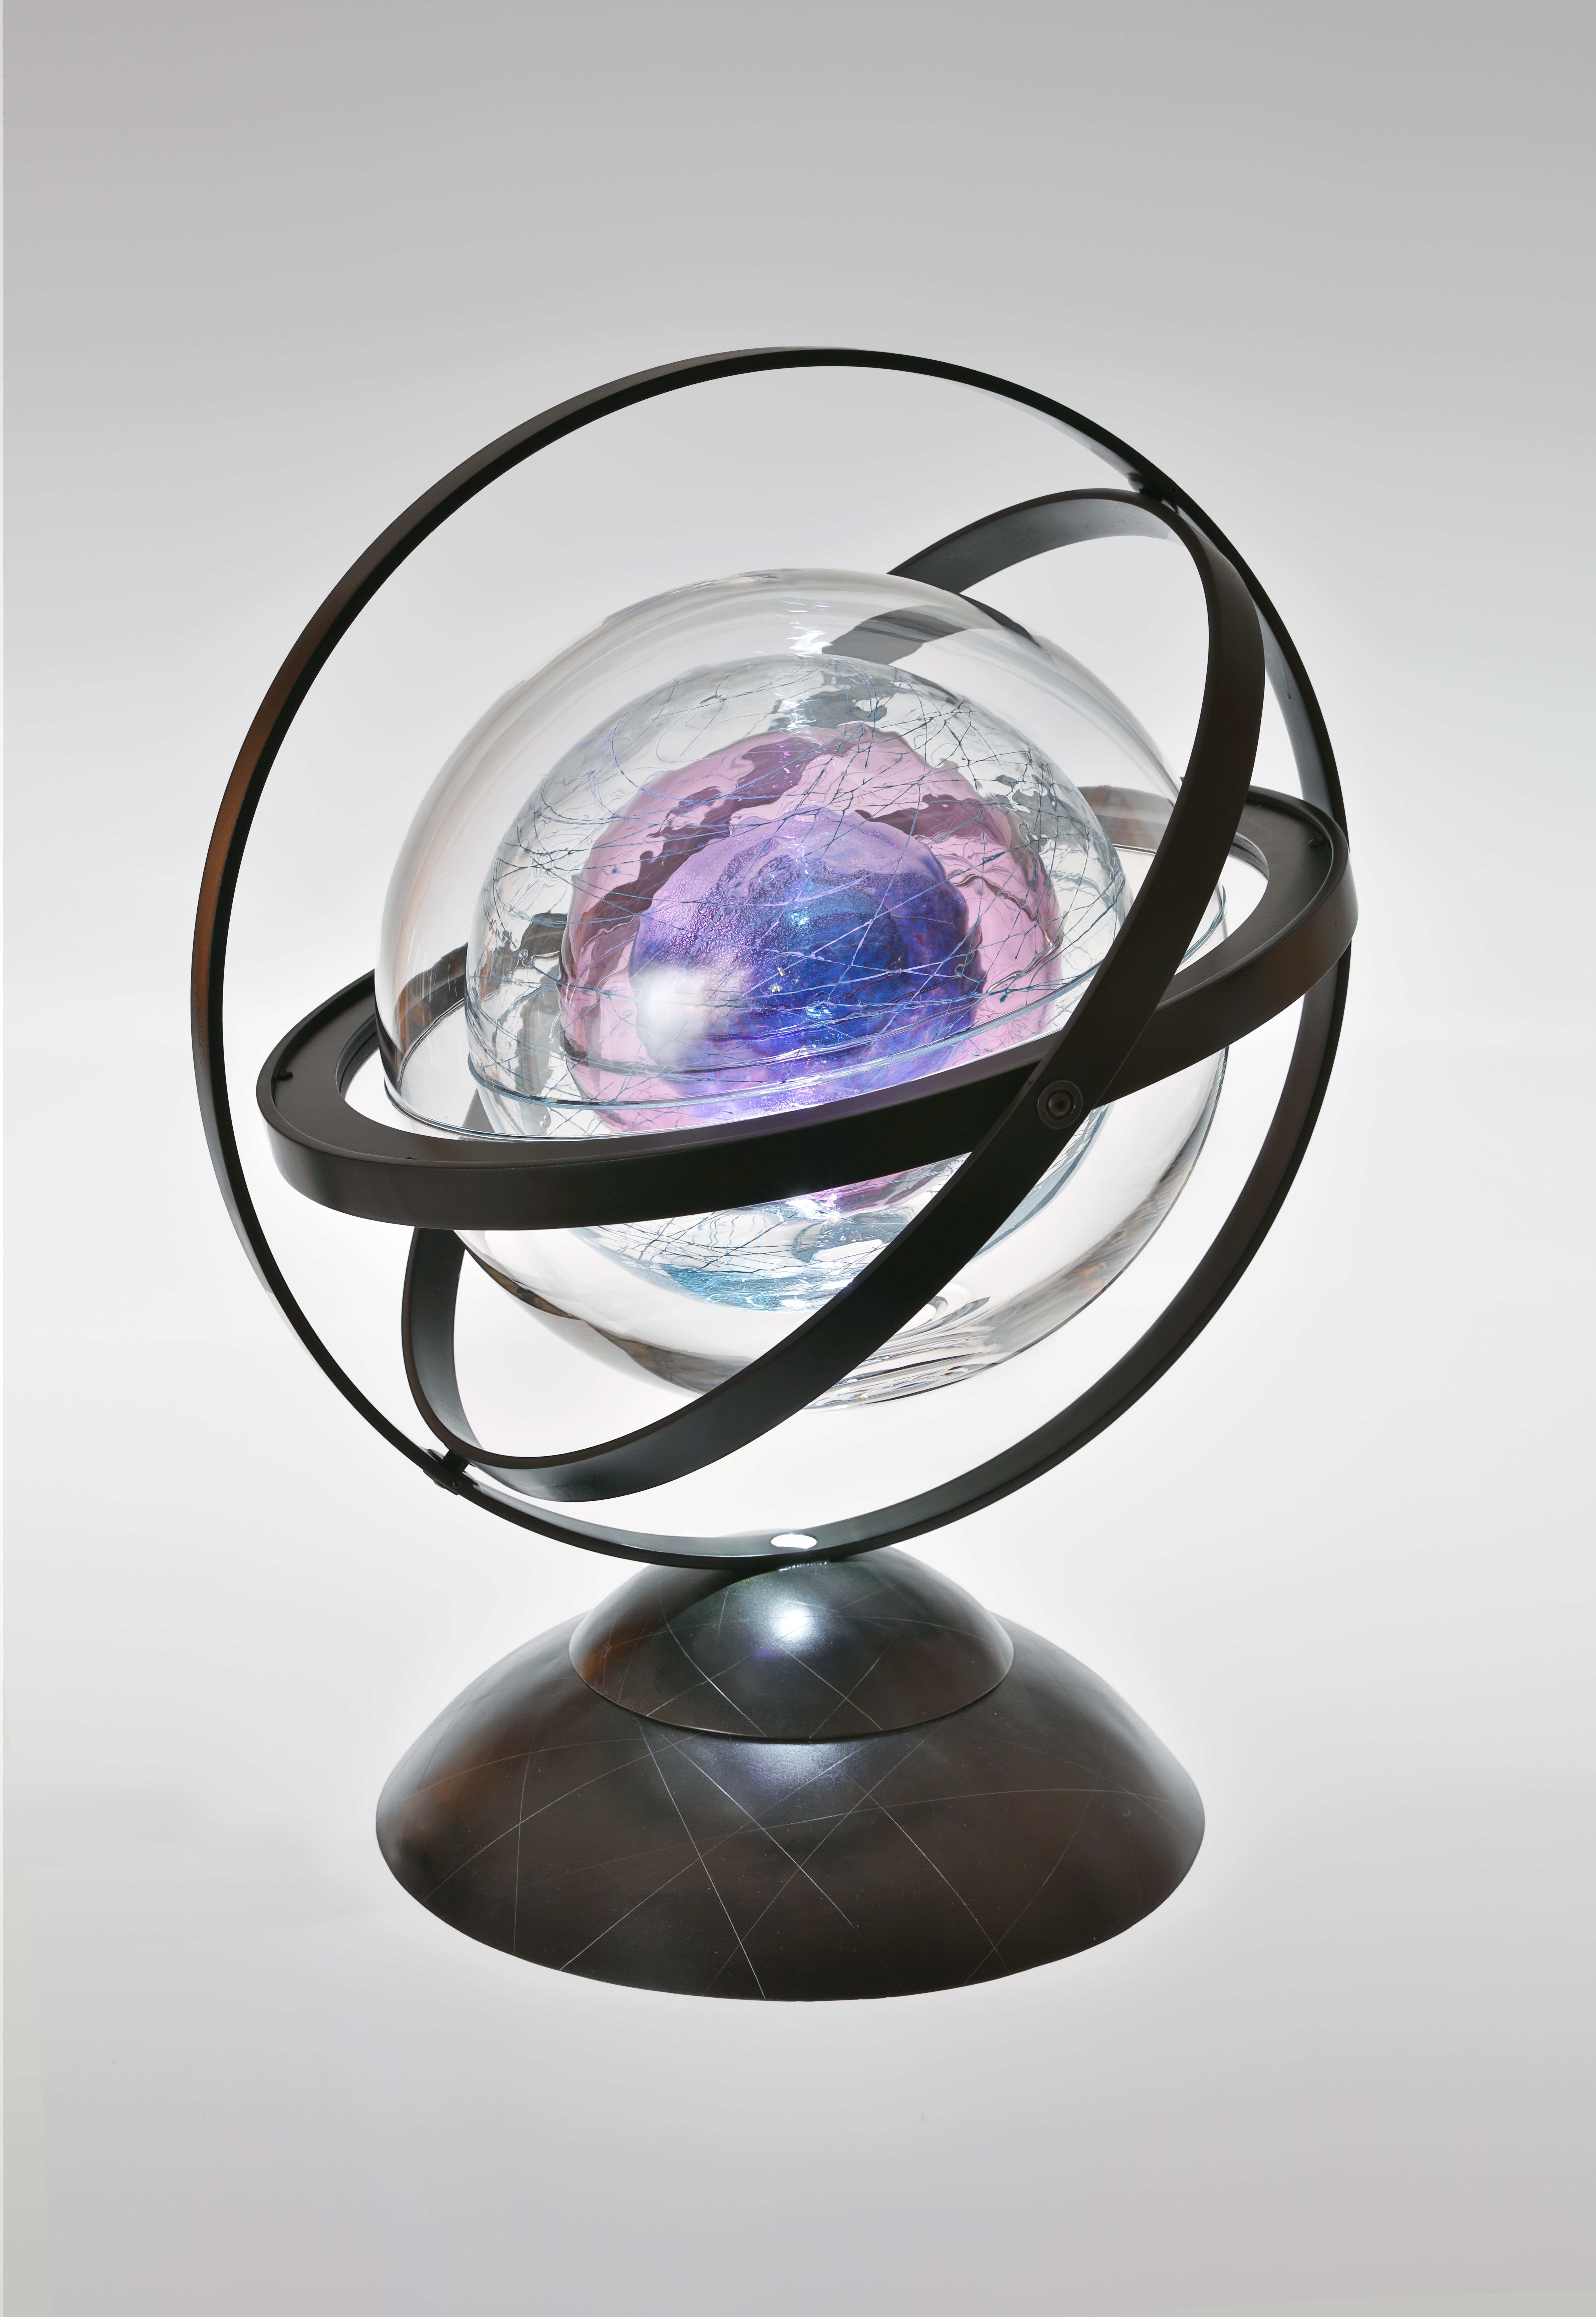 Glass sphere that spins in metal rings.